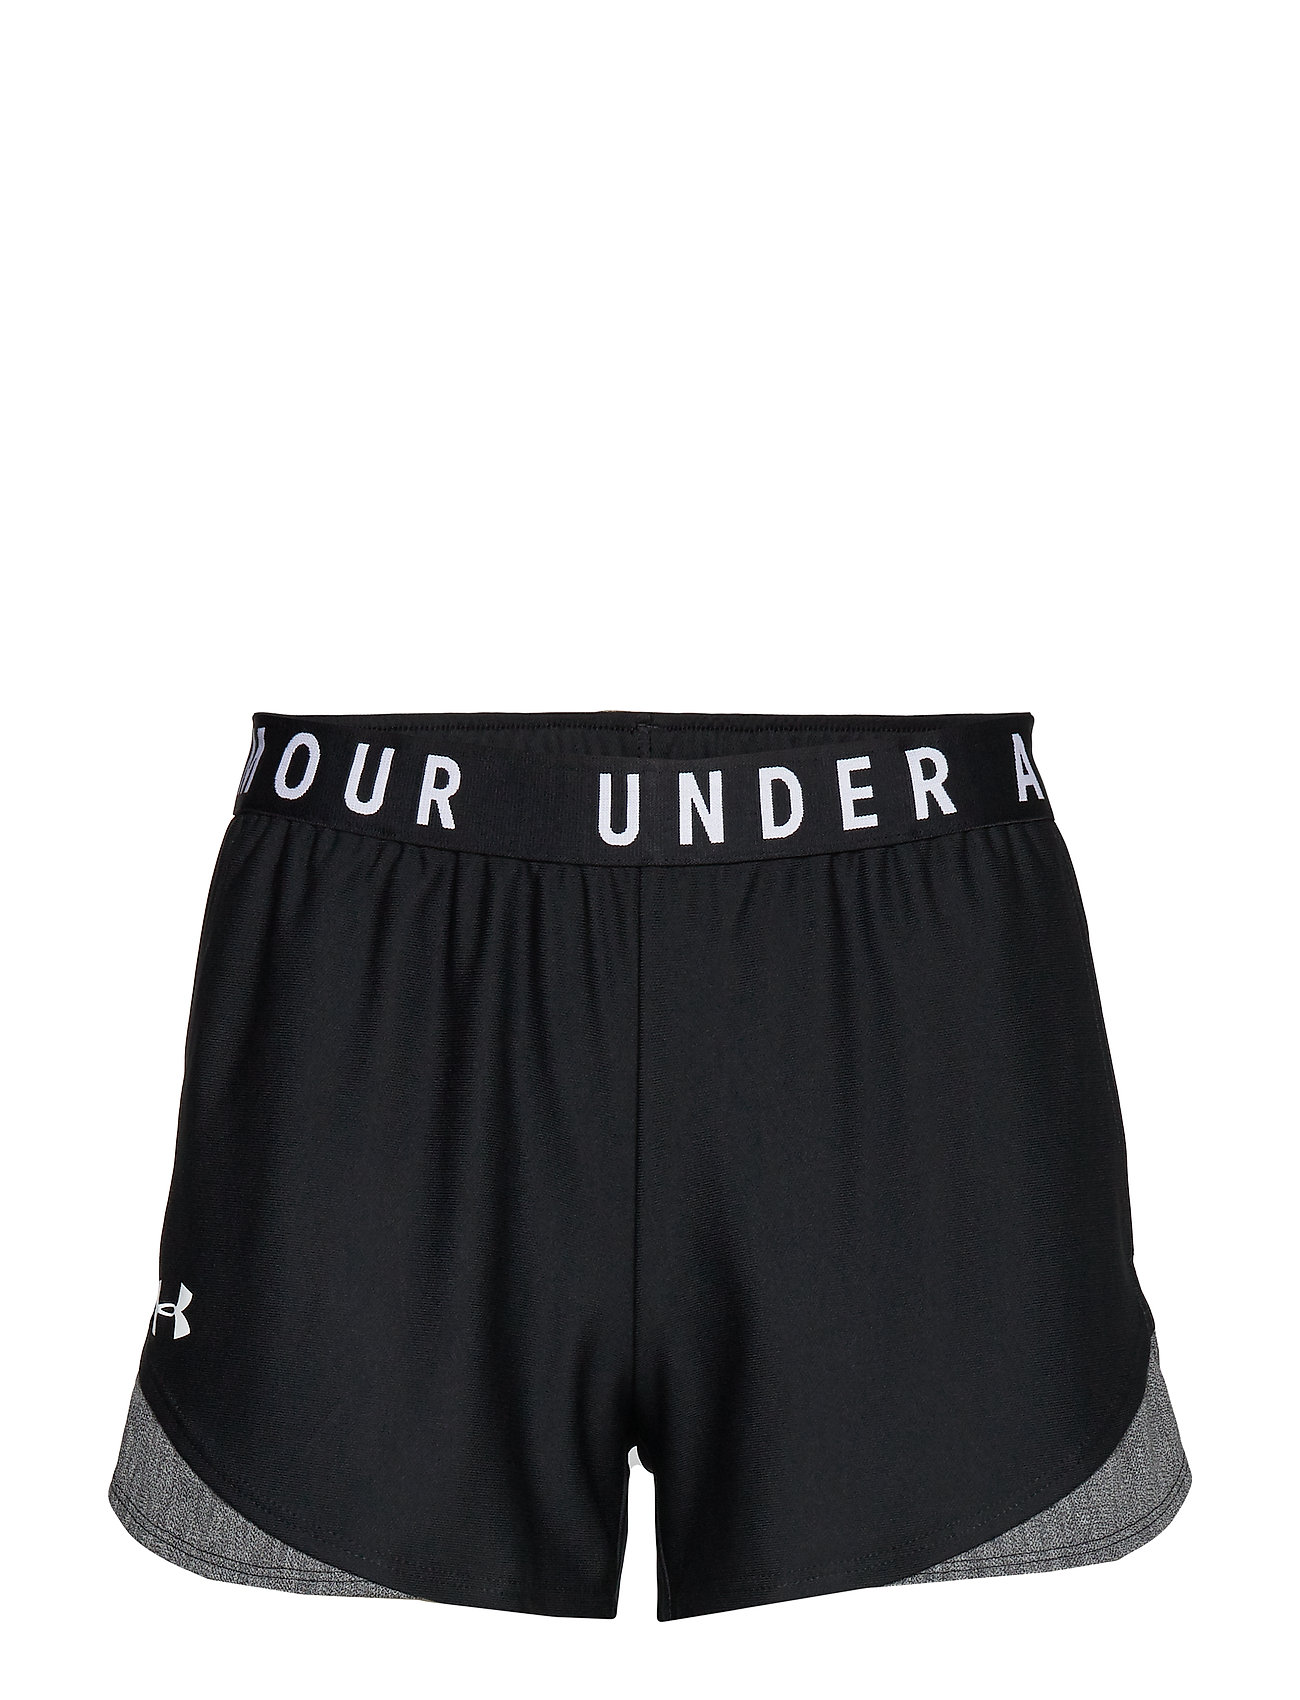 Under Armour PLAY UP SHORT 3.0 TWIST INSET - BLACK